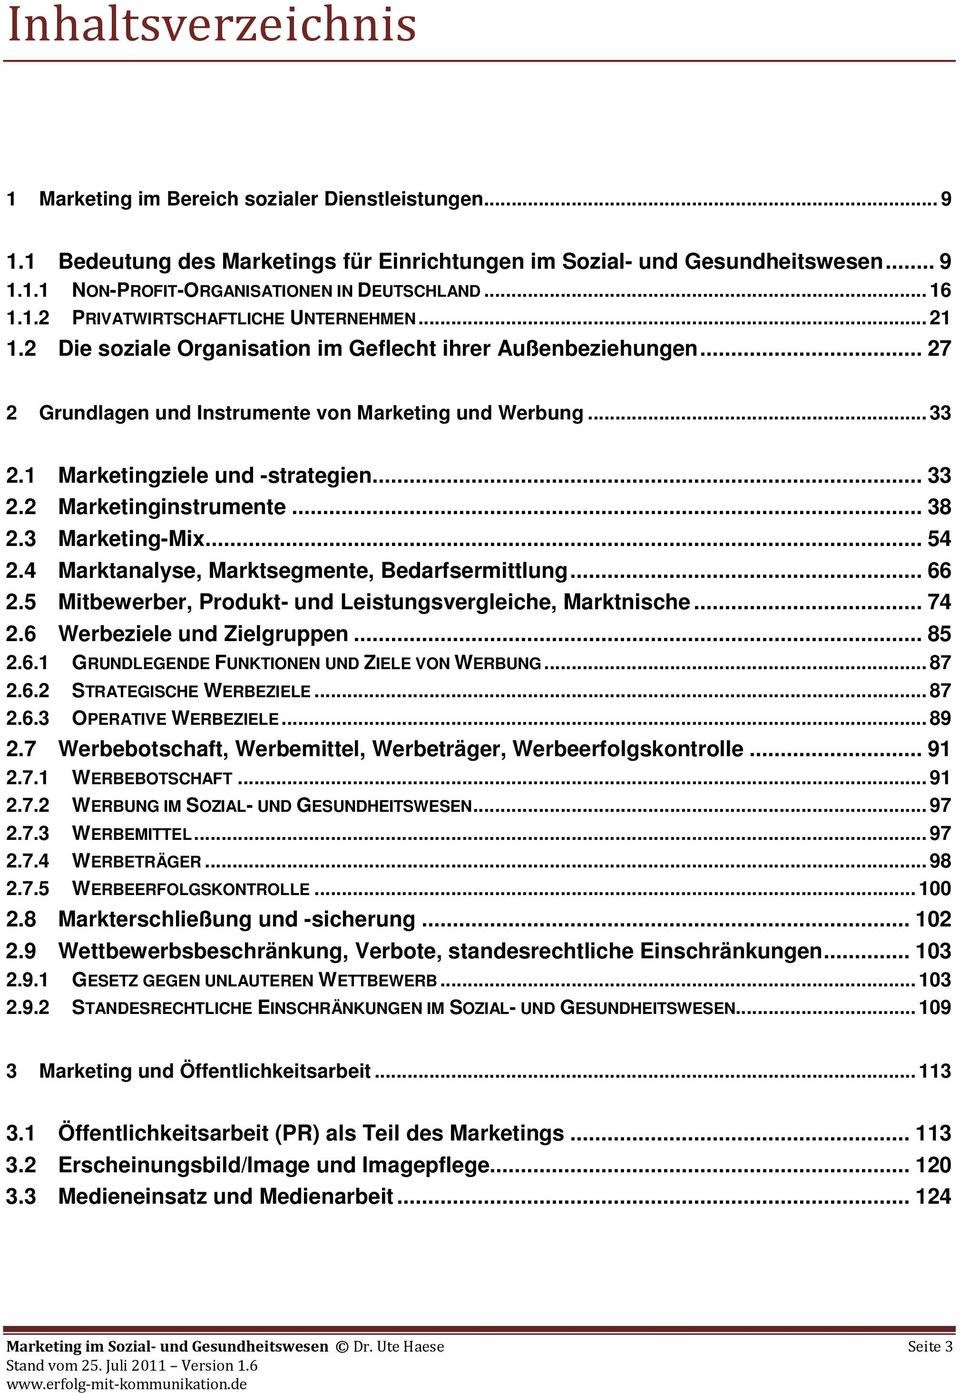 1 Marketingziele und -strategien... 33 2.2 Marketinginstrumente... 38 2.3 Marketing-Mix... 54 2.4 Marktanalyse, Marktsegmente, Bedarfsermittlung... 66 2.